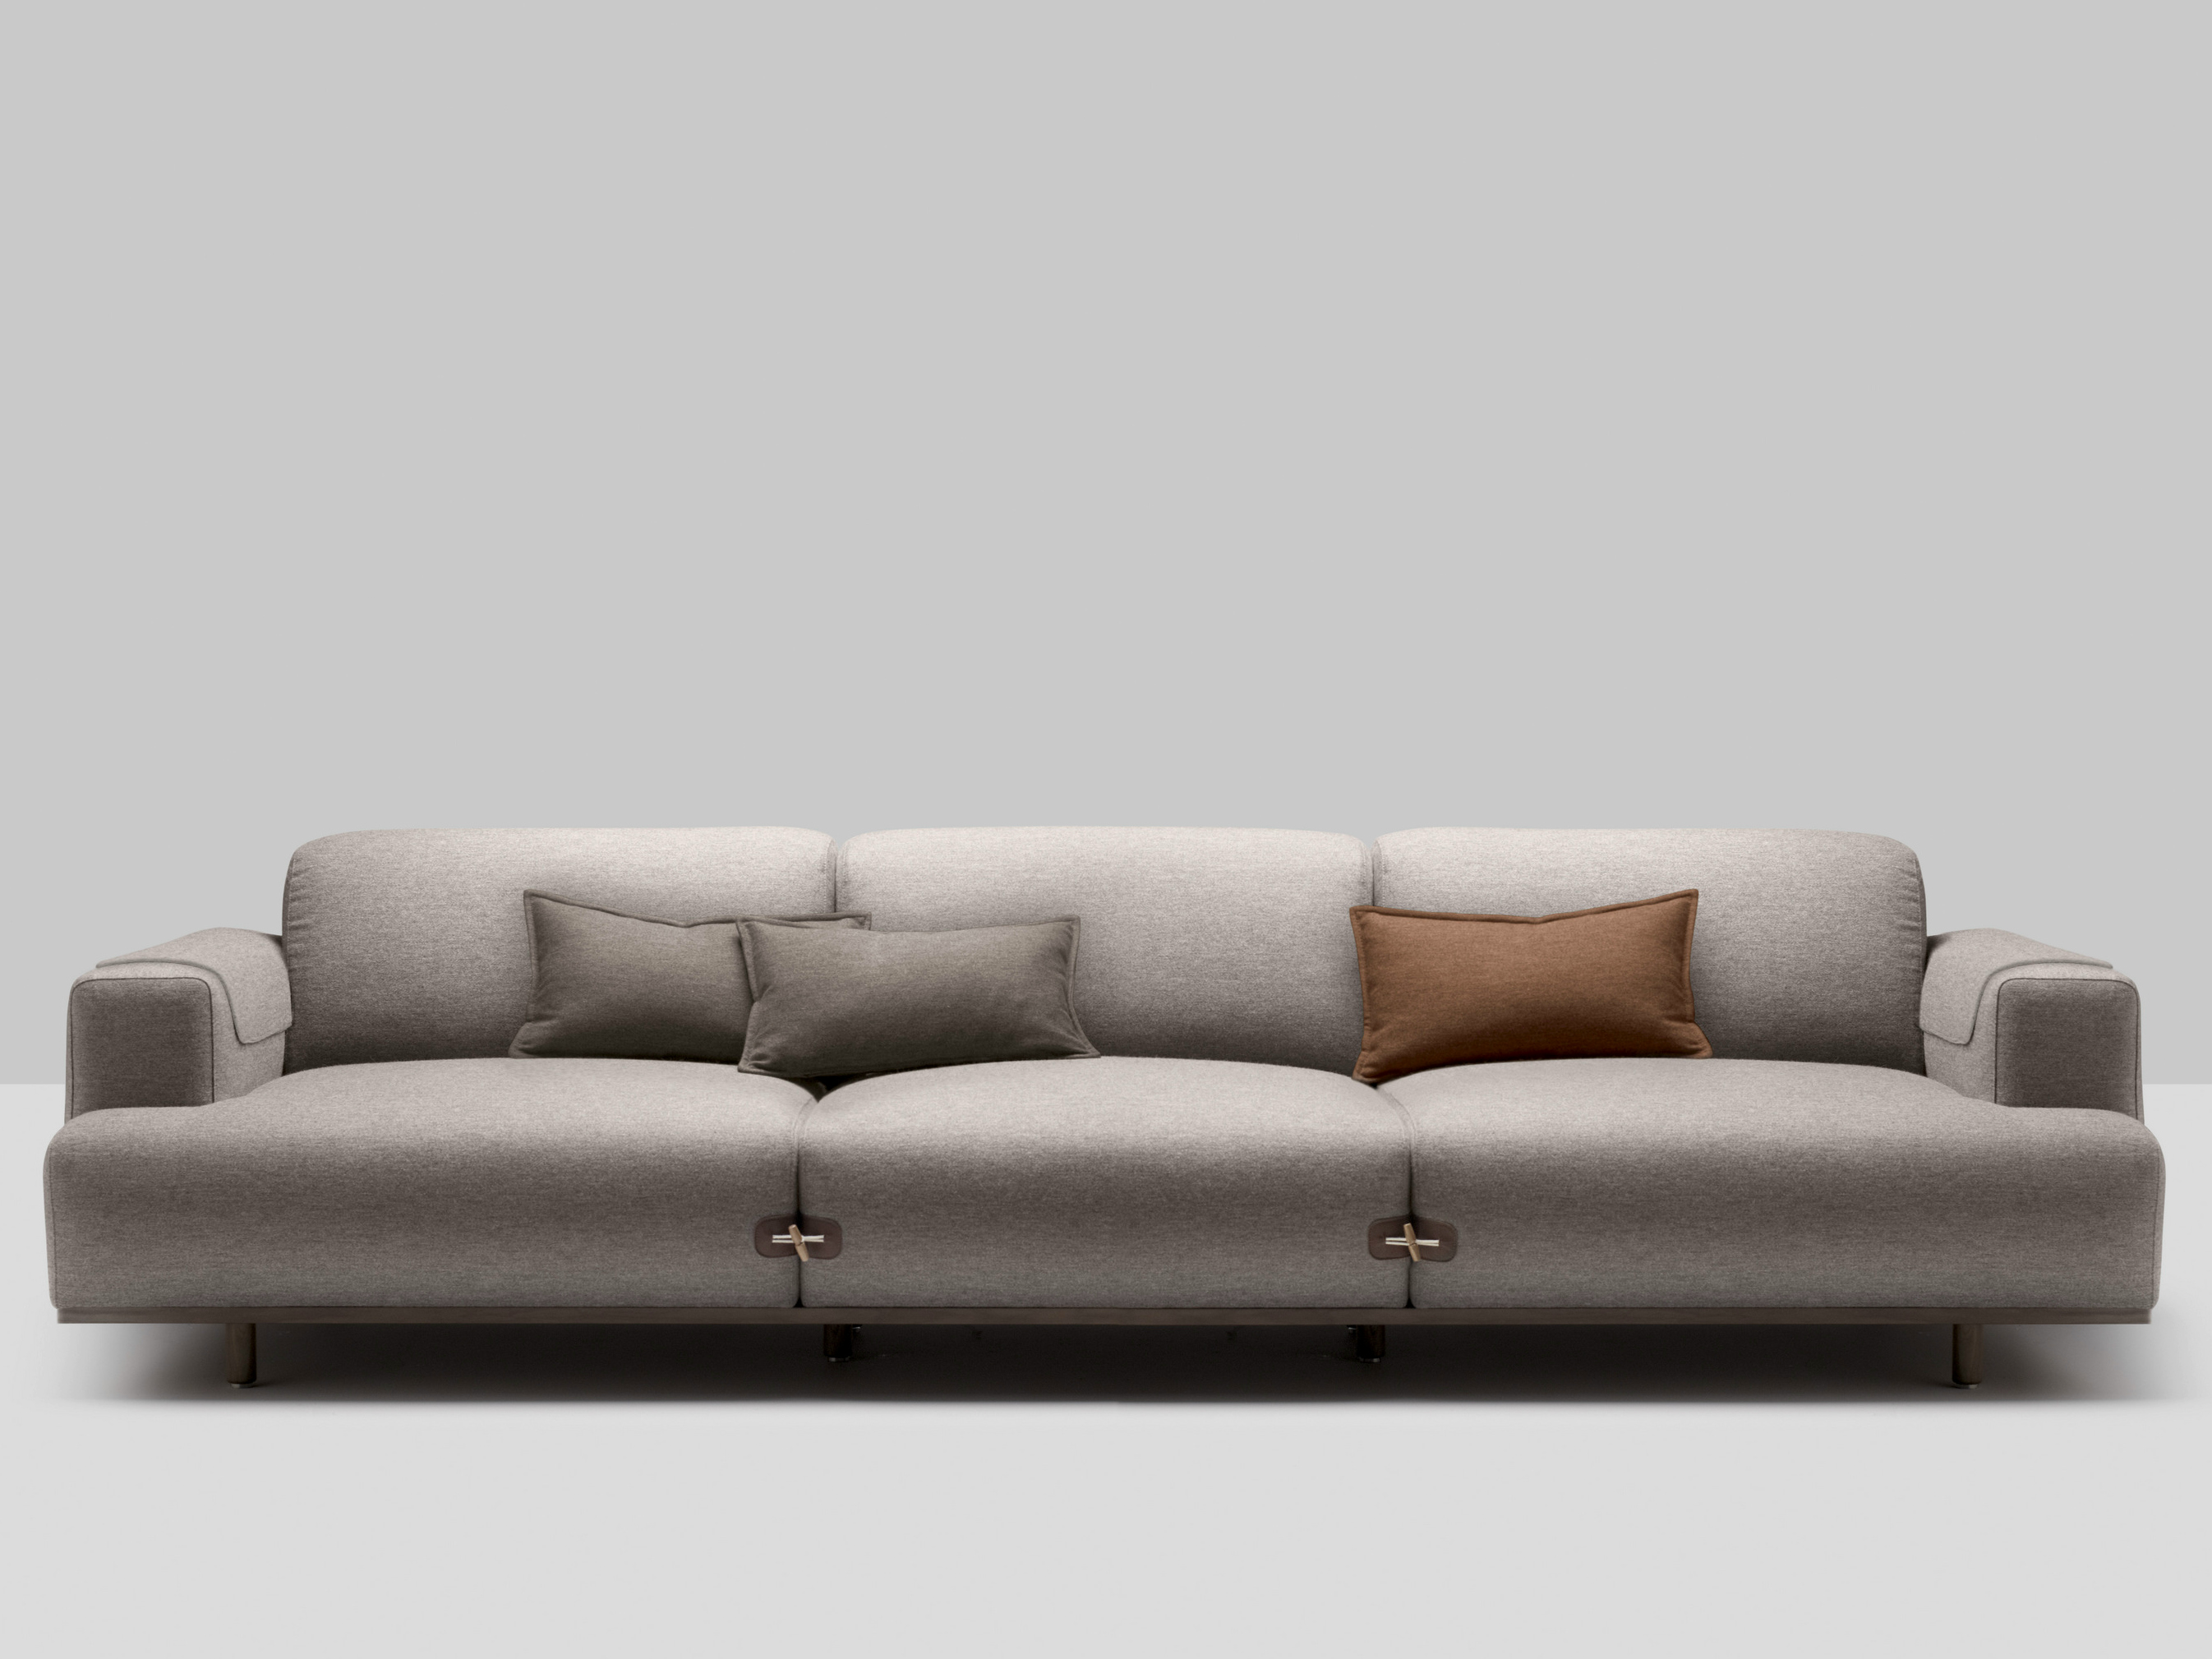 3 SEATER UPHOLSTERED FABRIC SOFA DUFFLE COLLECTION BY BOSC